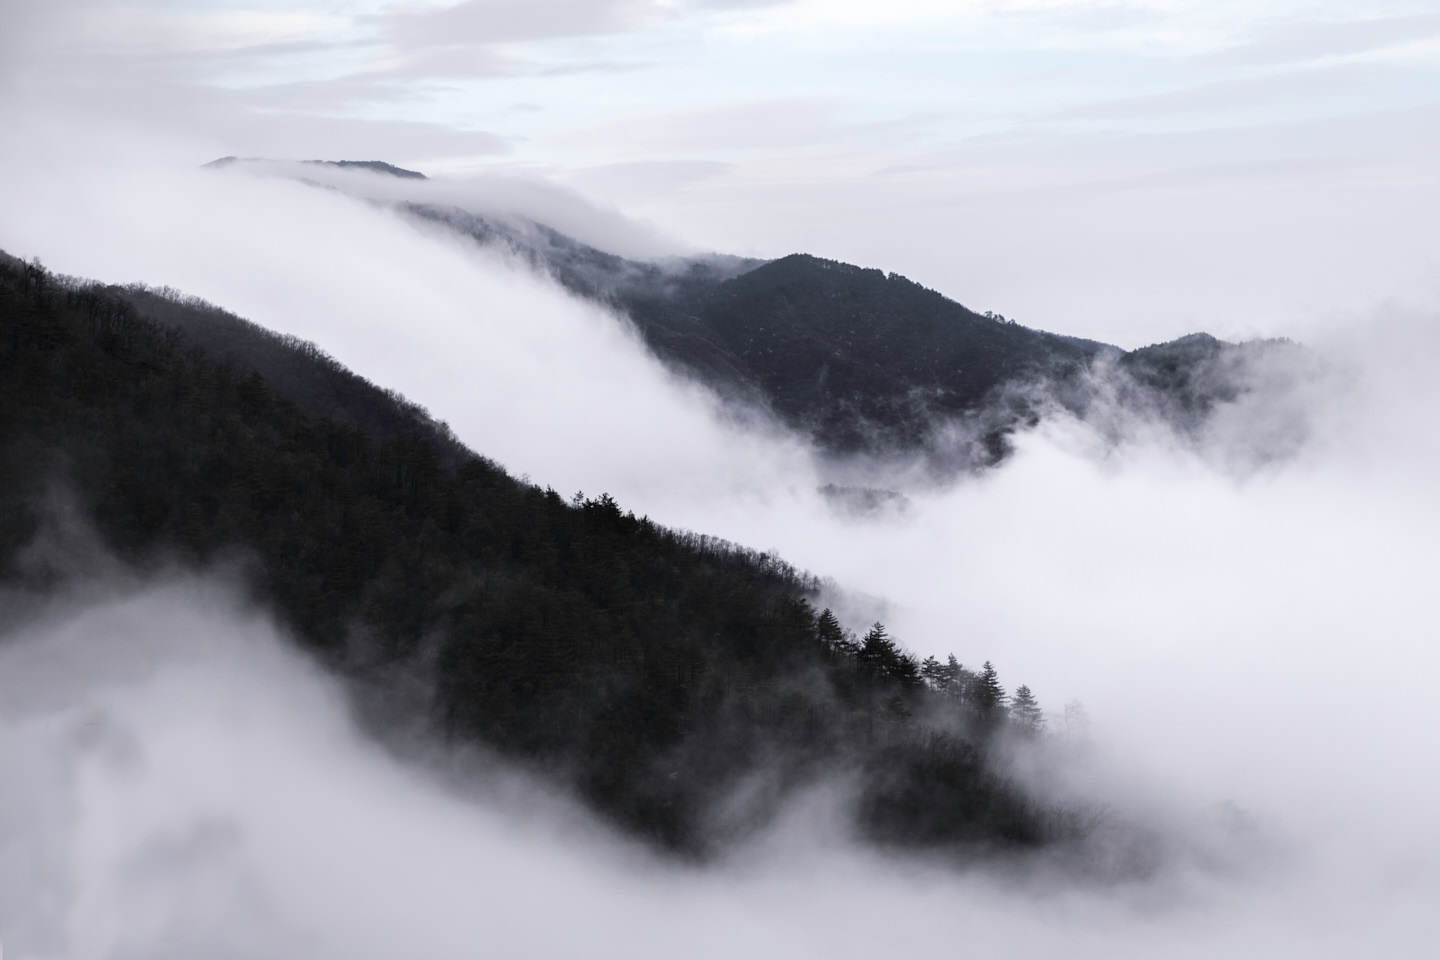 Rivers of cloud rush over mountain ridges